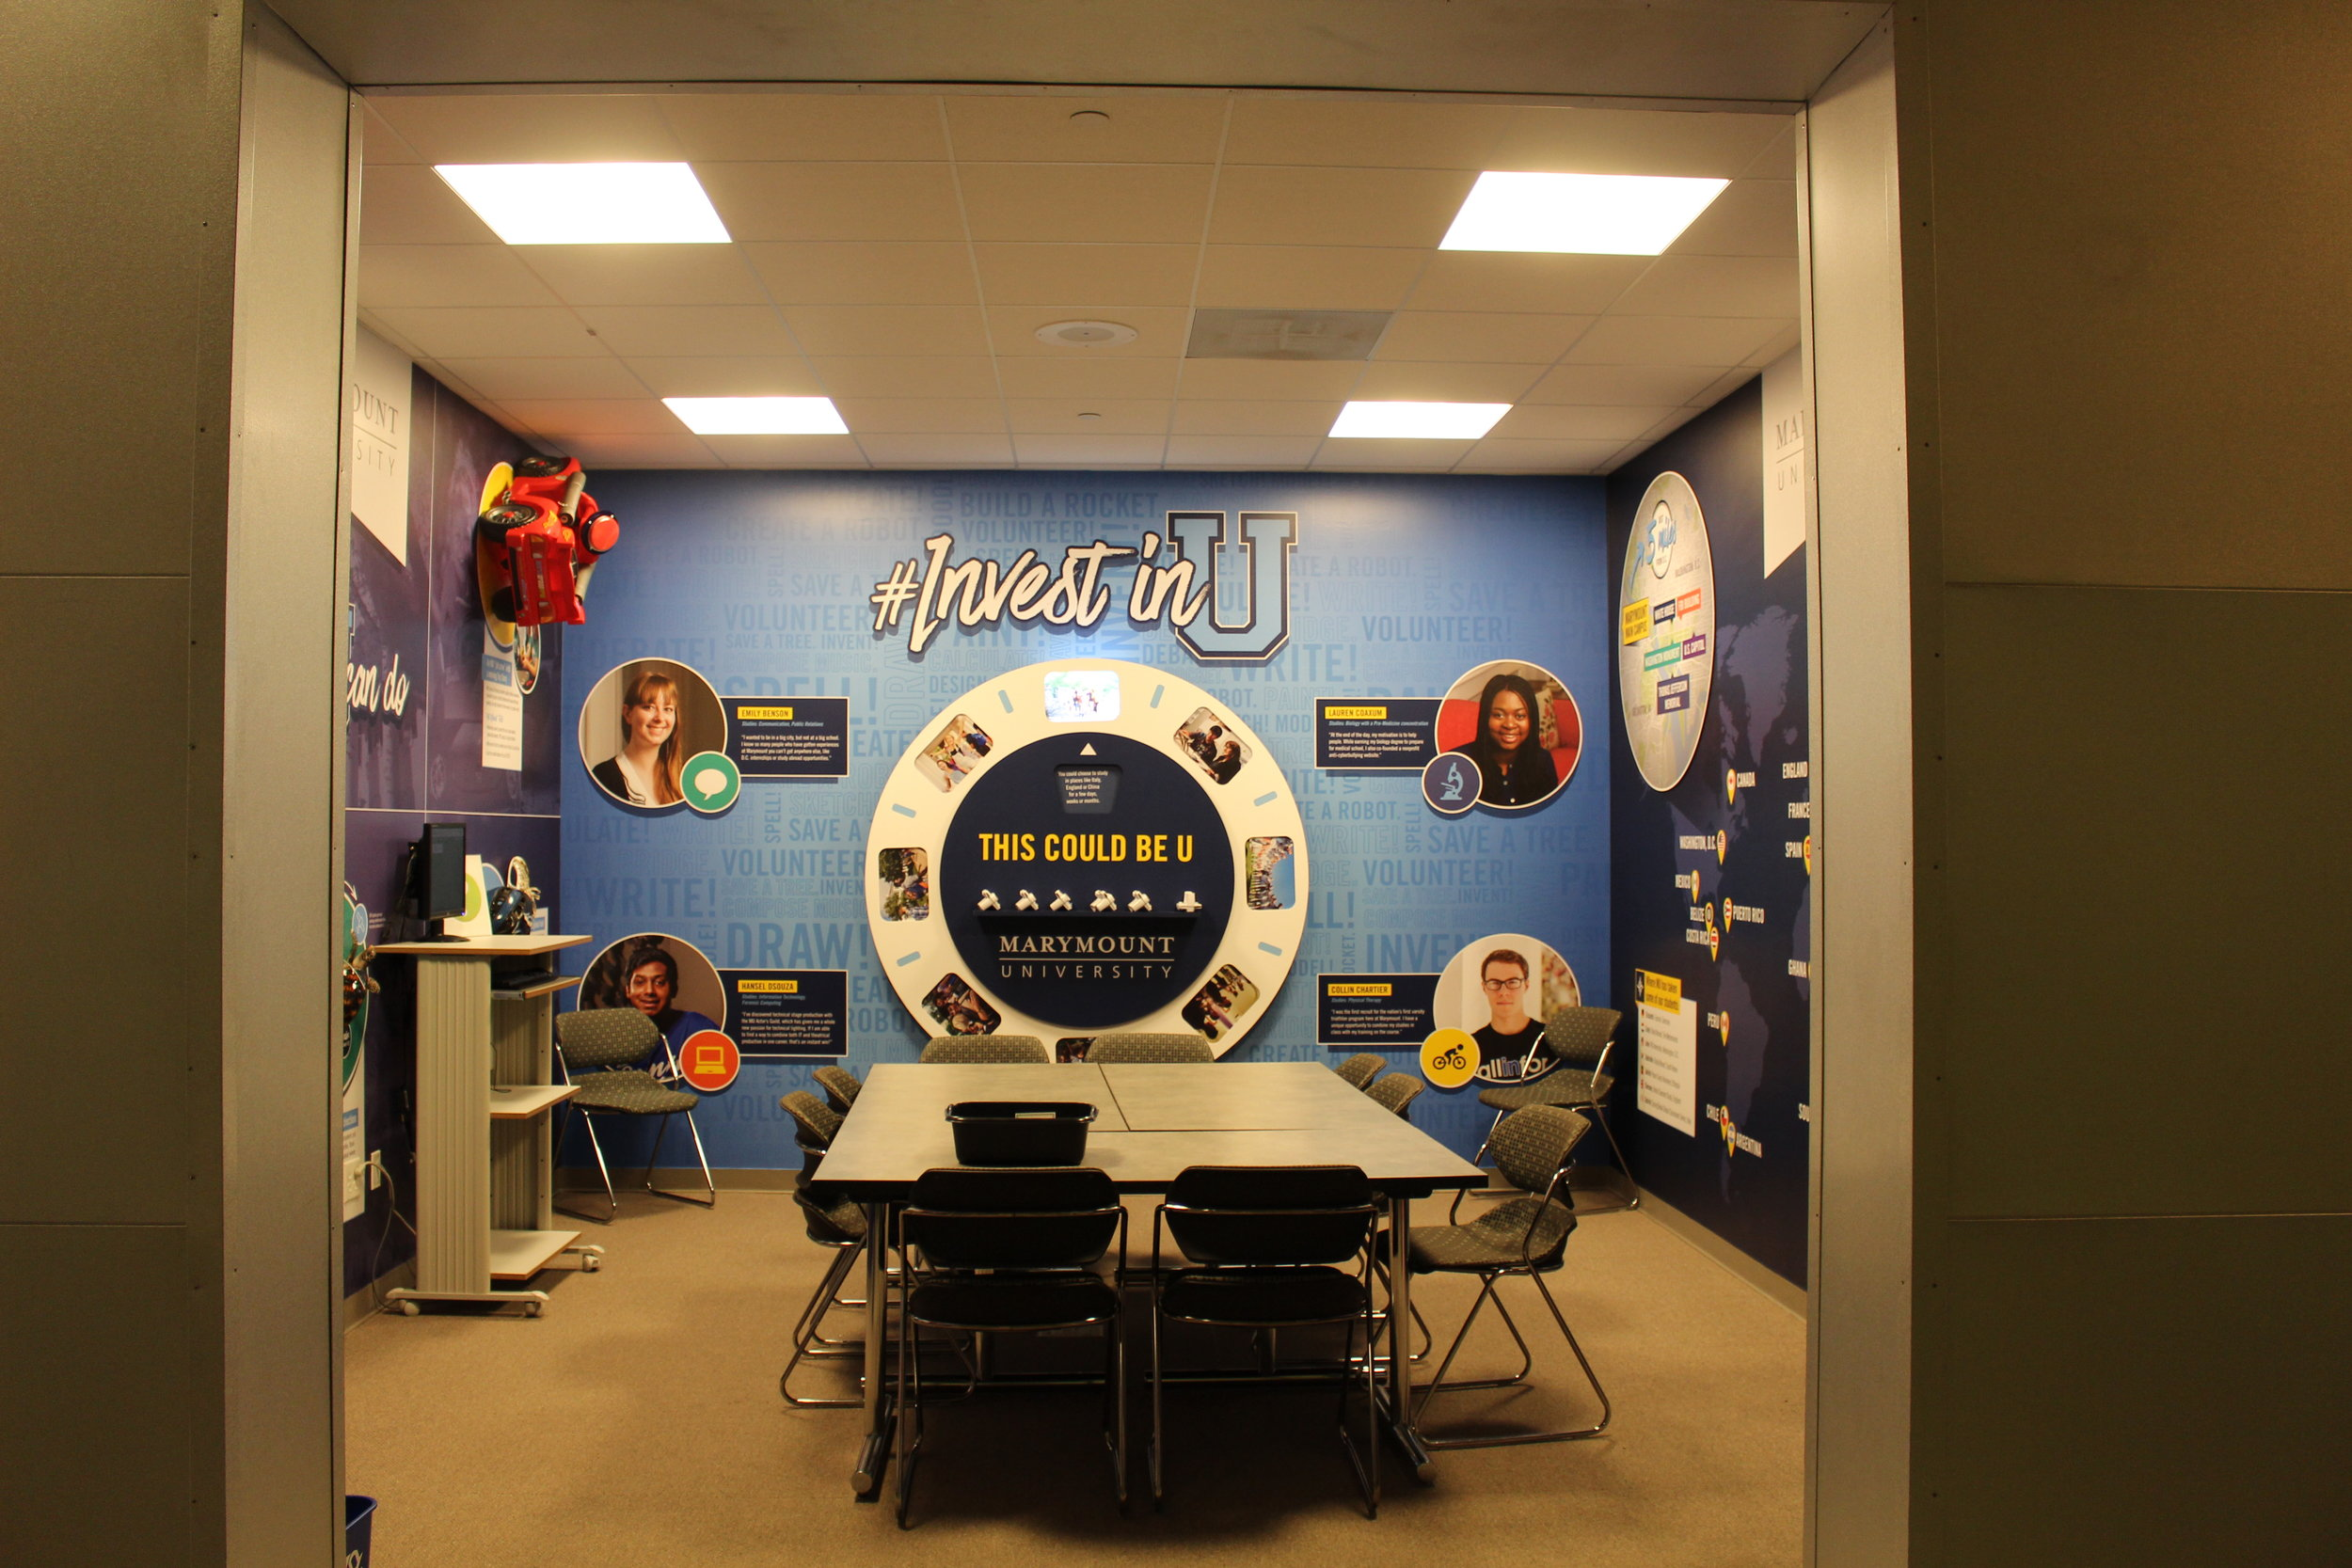 Part of a three-year partnership with Junior Achievement, Marymount's storefront encourages students to #InvestinU. To give the middle schoolers a glimpse of the types of work they can expect to do as college students, three-dimensional elements from Marymount student projects are affixed to a wall